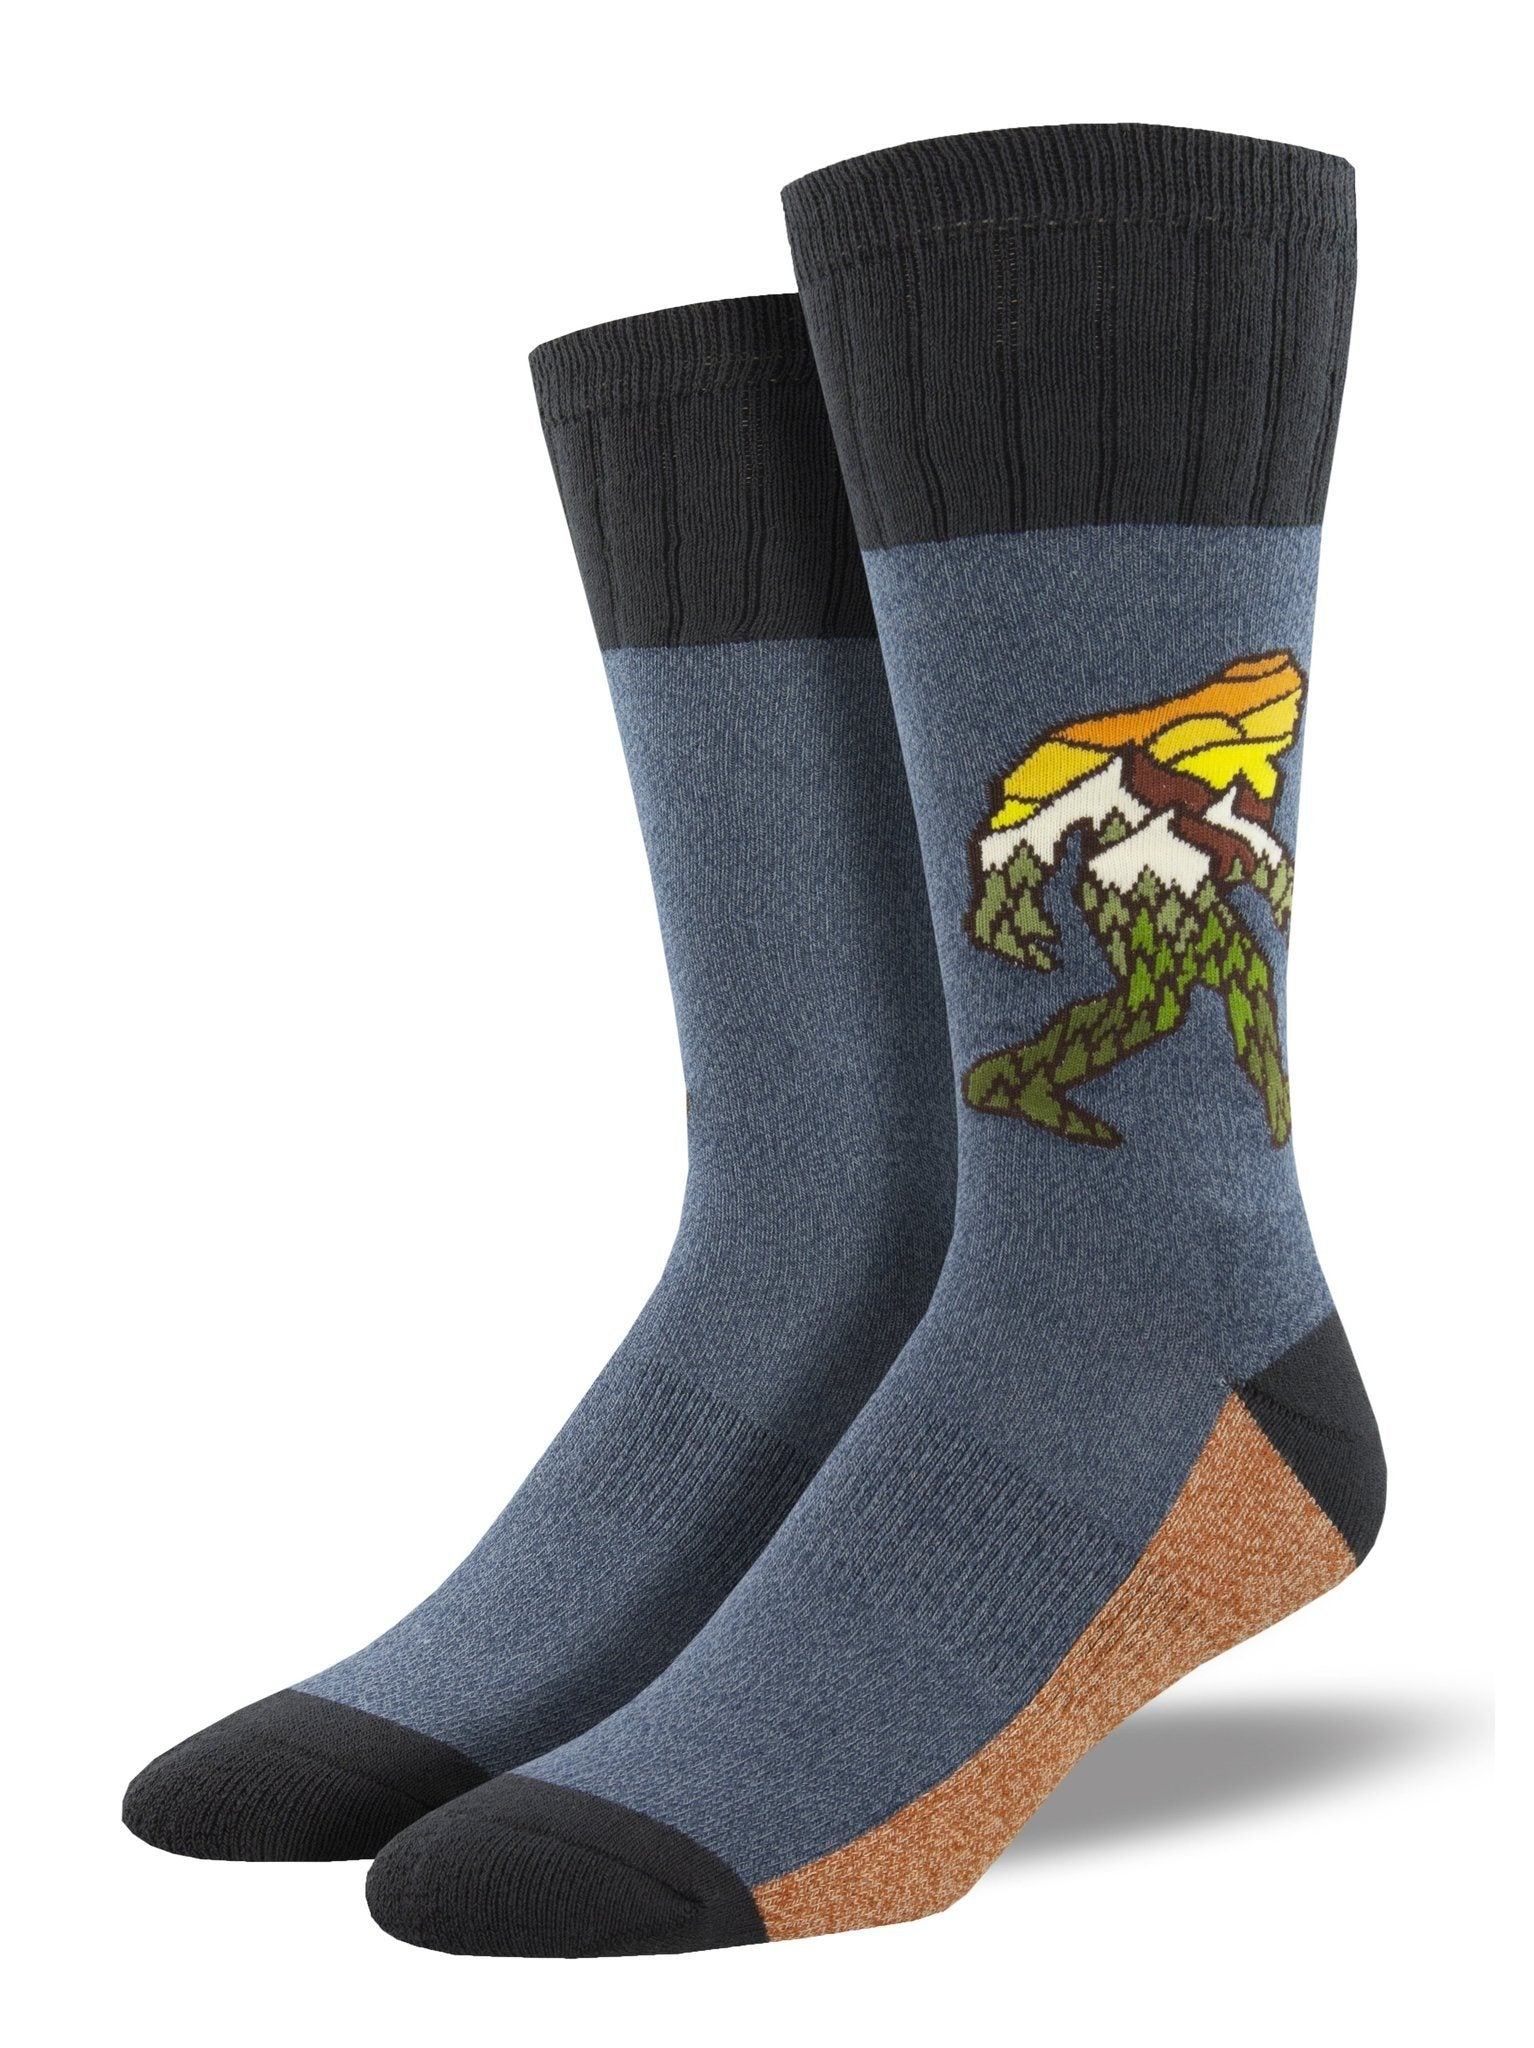 Socksmith - Outlands Leave No Trace Bigfoot Boot Socks | Men's - Knock Your Socks Off